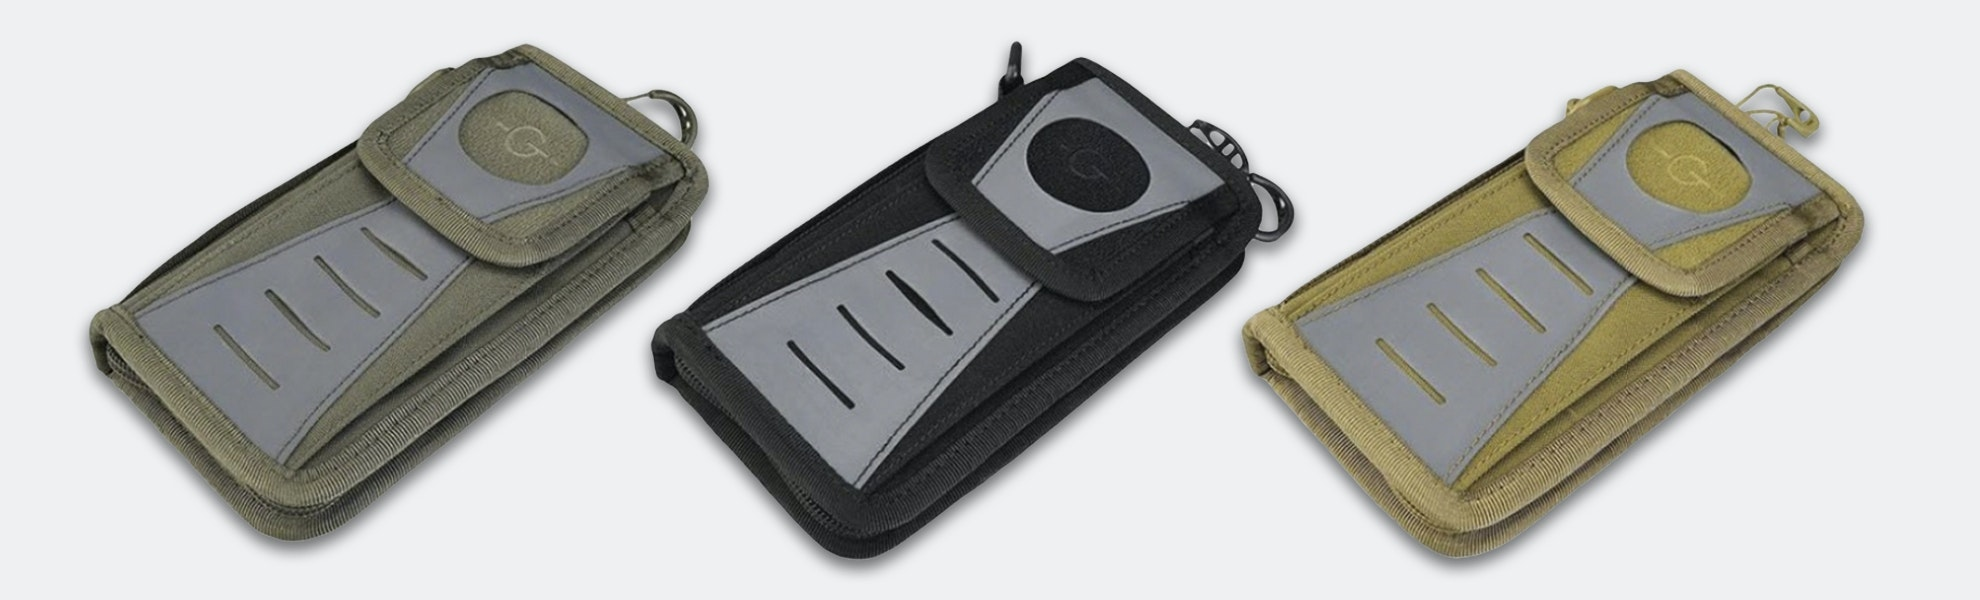 Tactical_Geek Block D Multifunction EDC Wallet